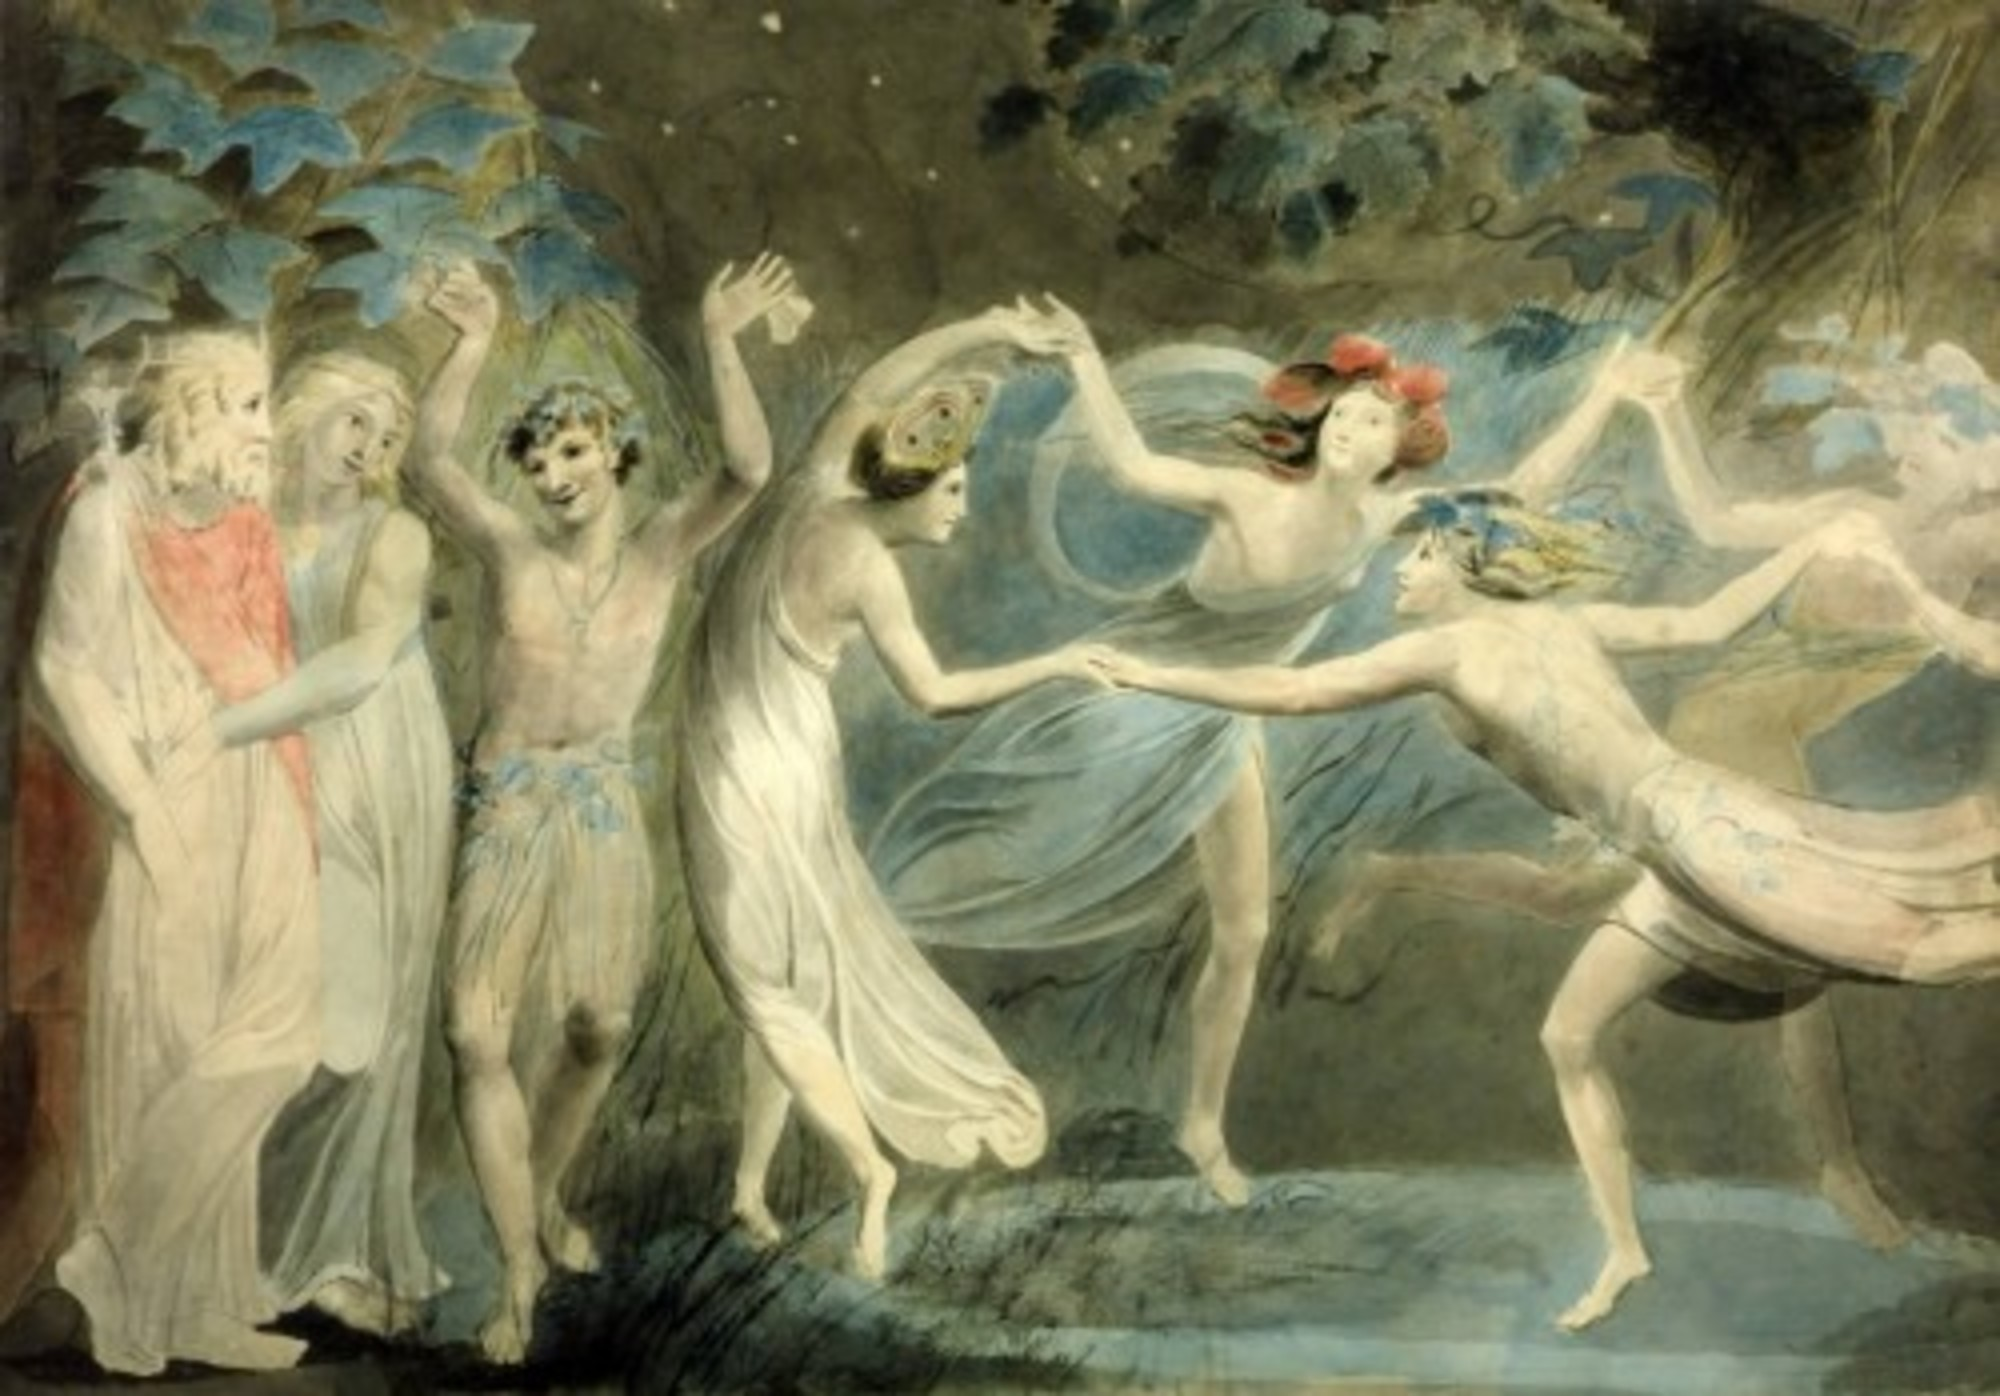 Oberon_Titania_and_Puck_with_Fairies_Dancing._William_Blake._c.1786.jpg